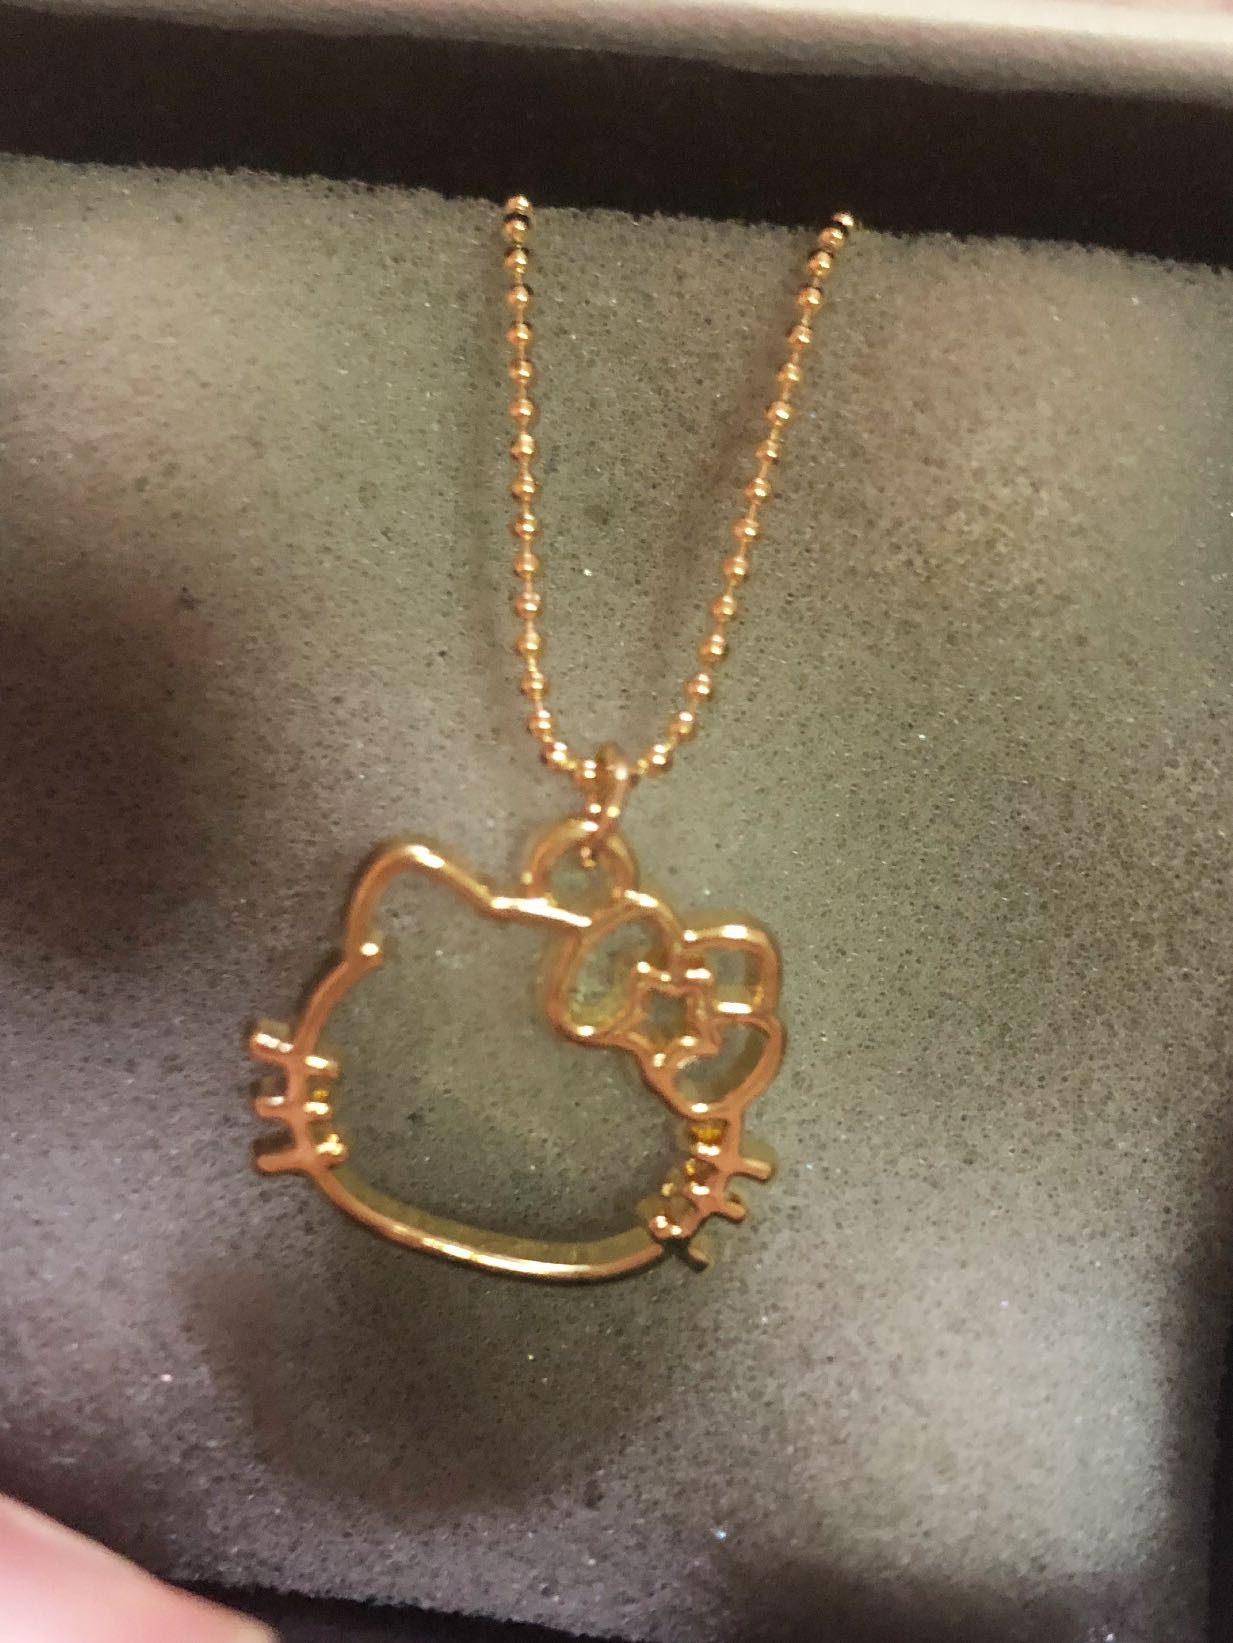 fcfb24573 Hello kitty gold necklace, Women's Fashion, Jewellery, Necklaces on ...